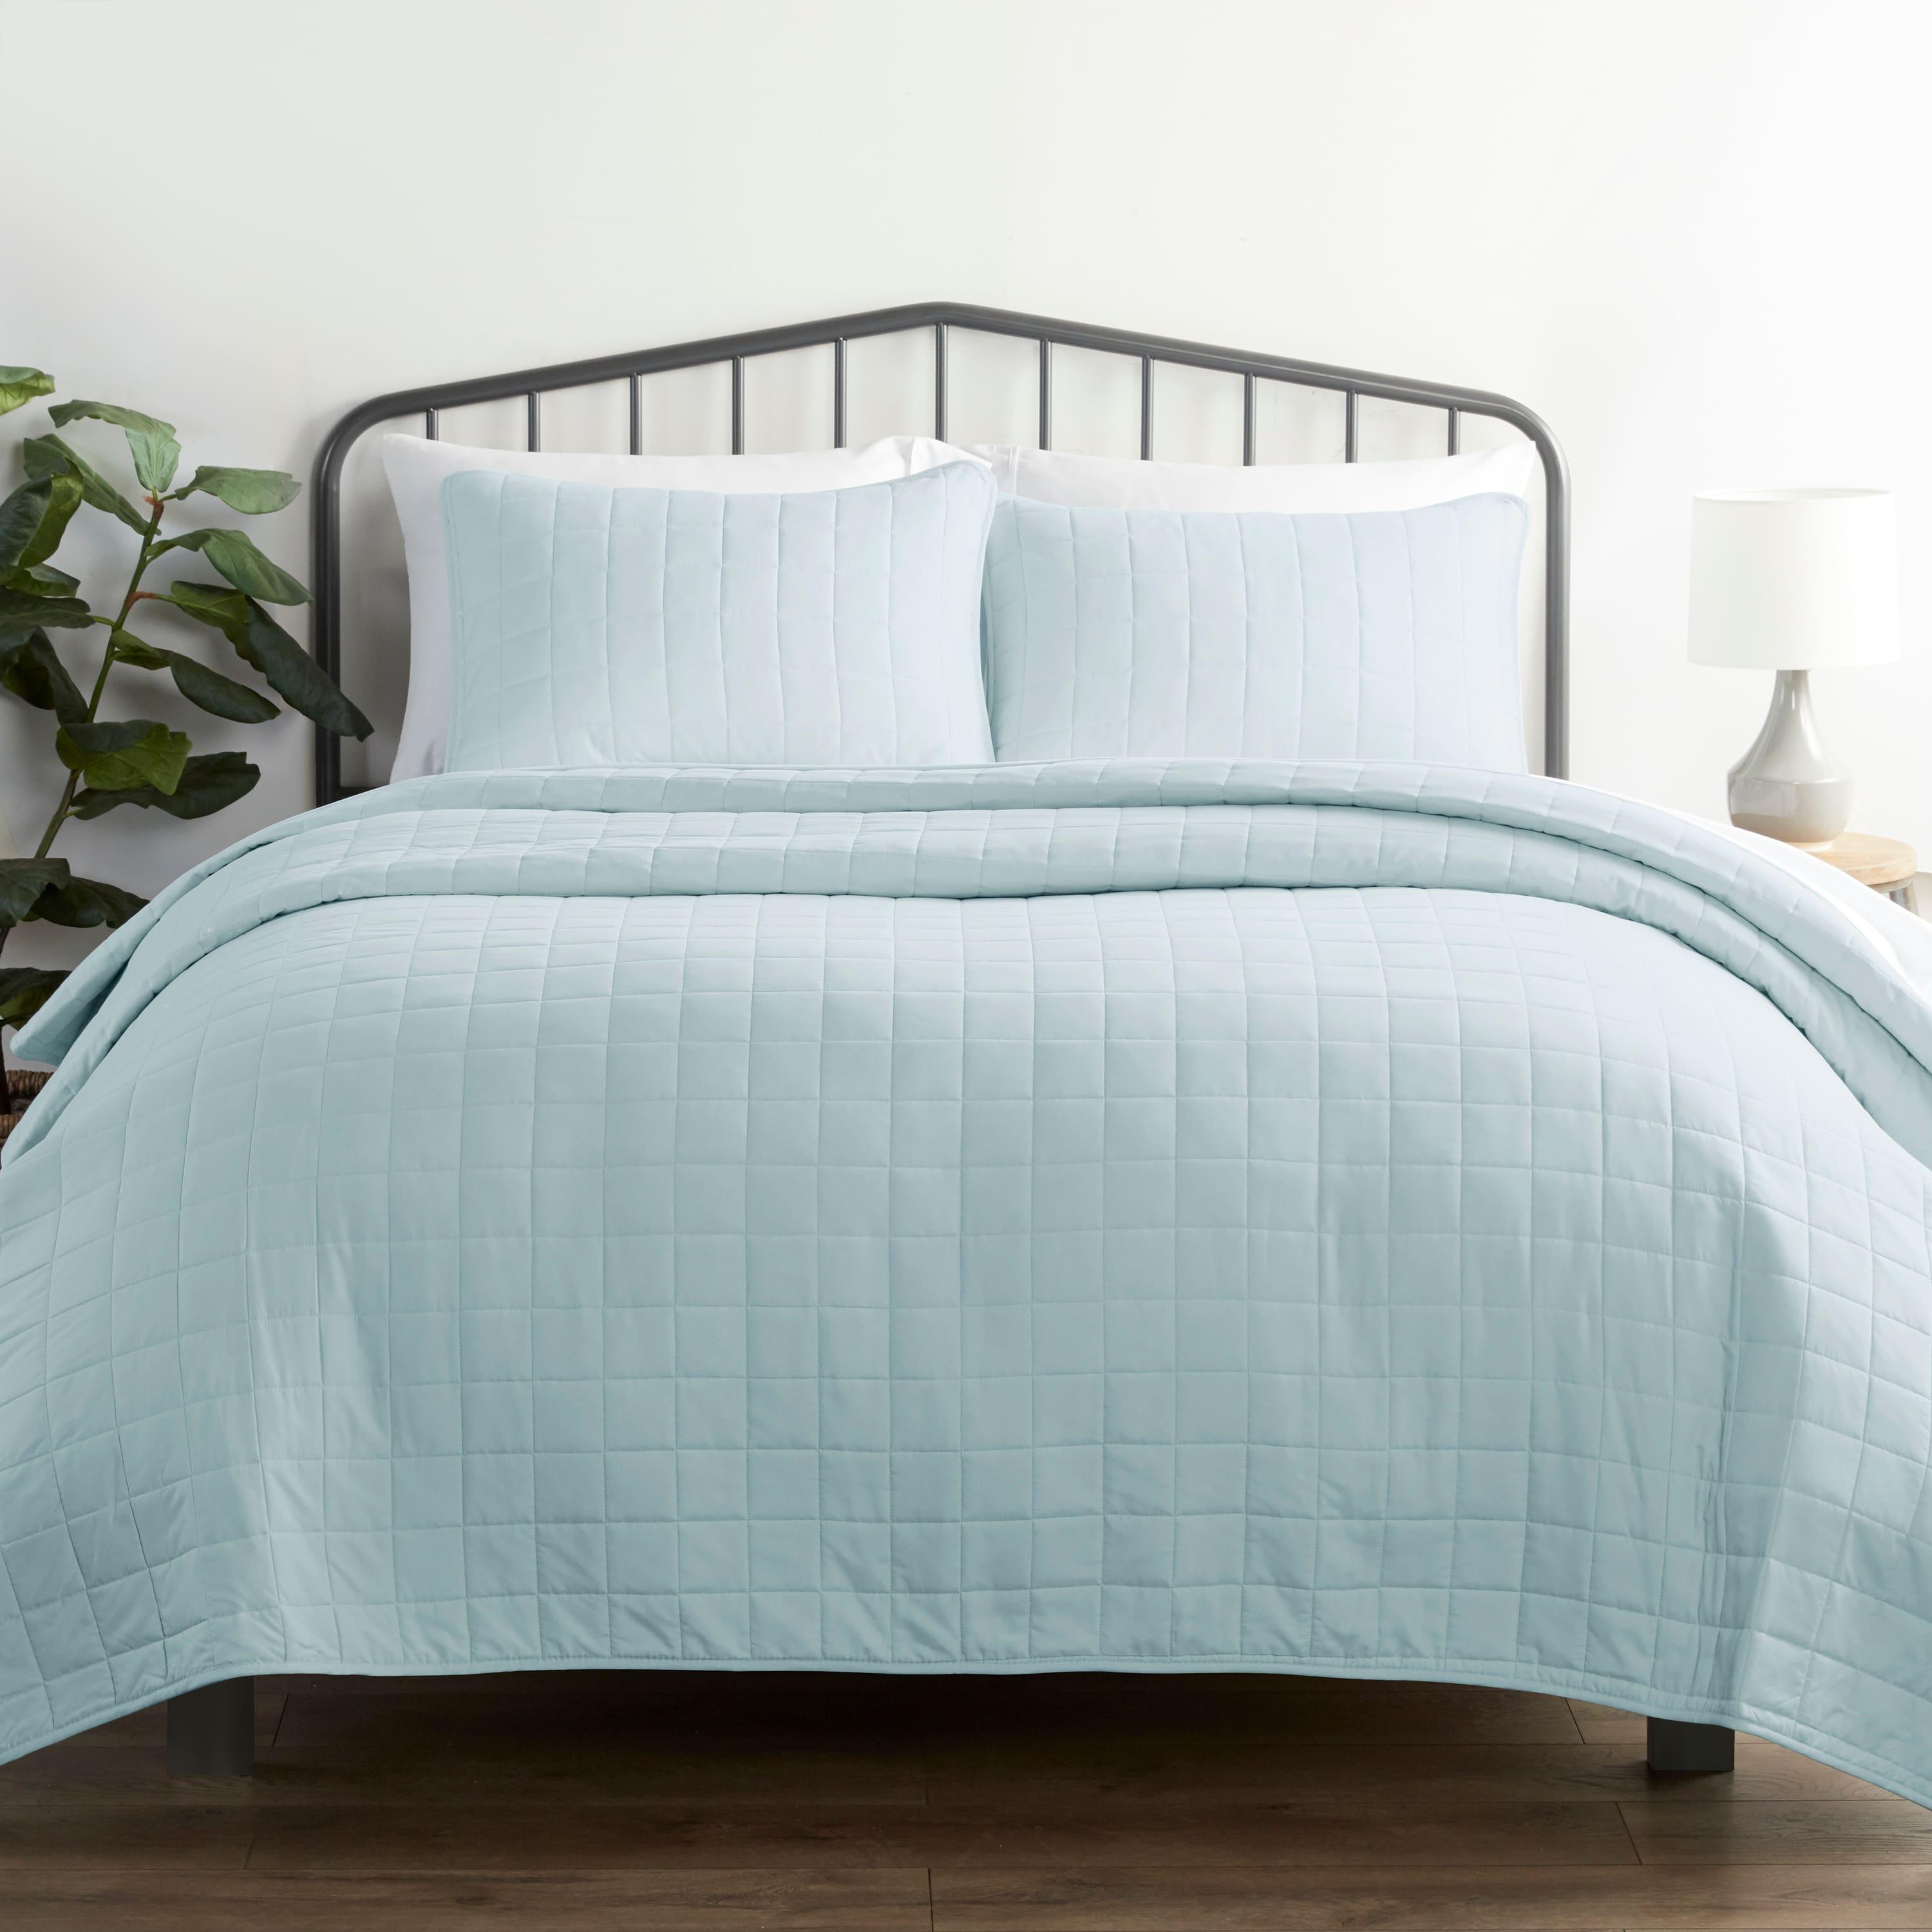 Linens & Hutch Quilted Coverlet Sets: Starting from $35 + Free Shipping